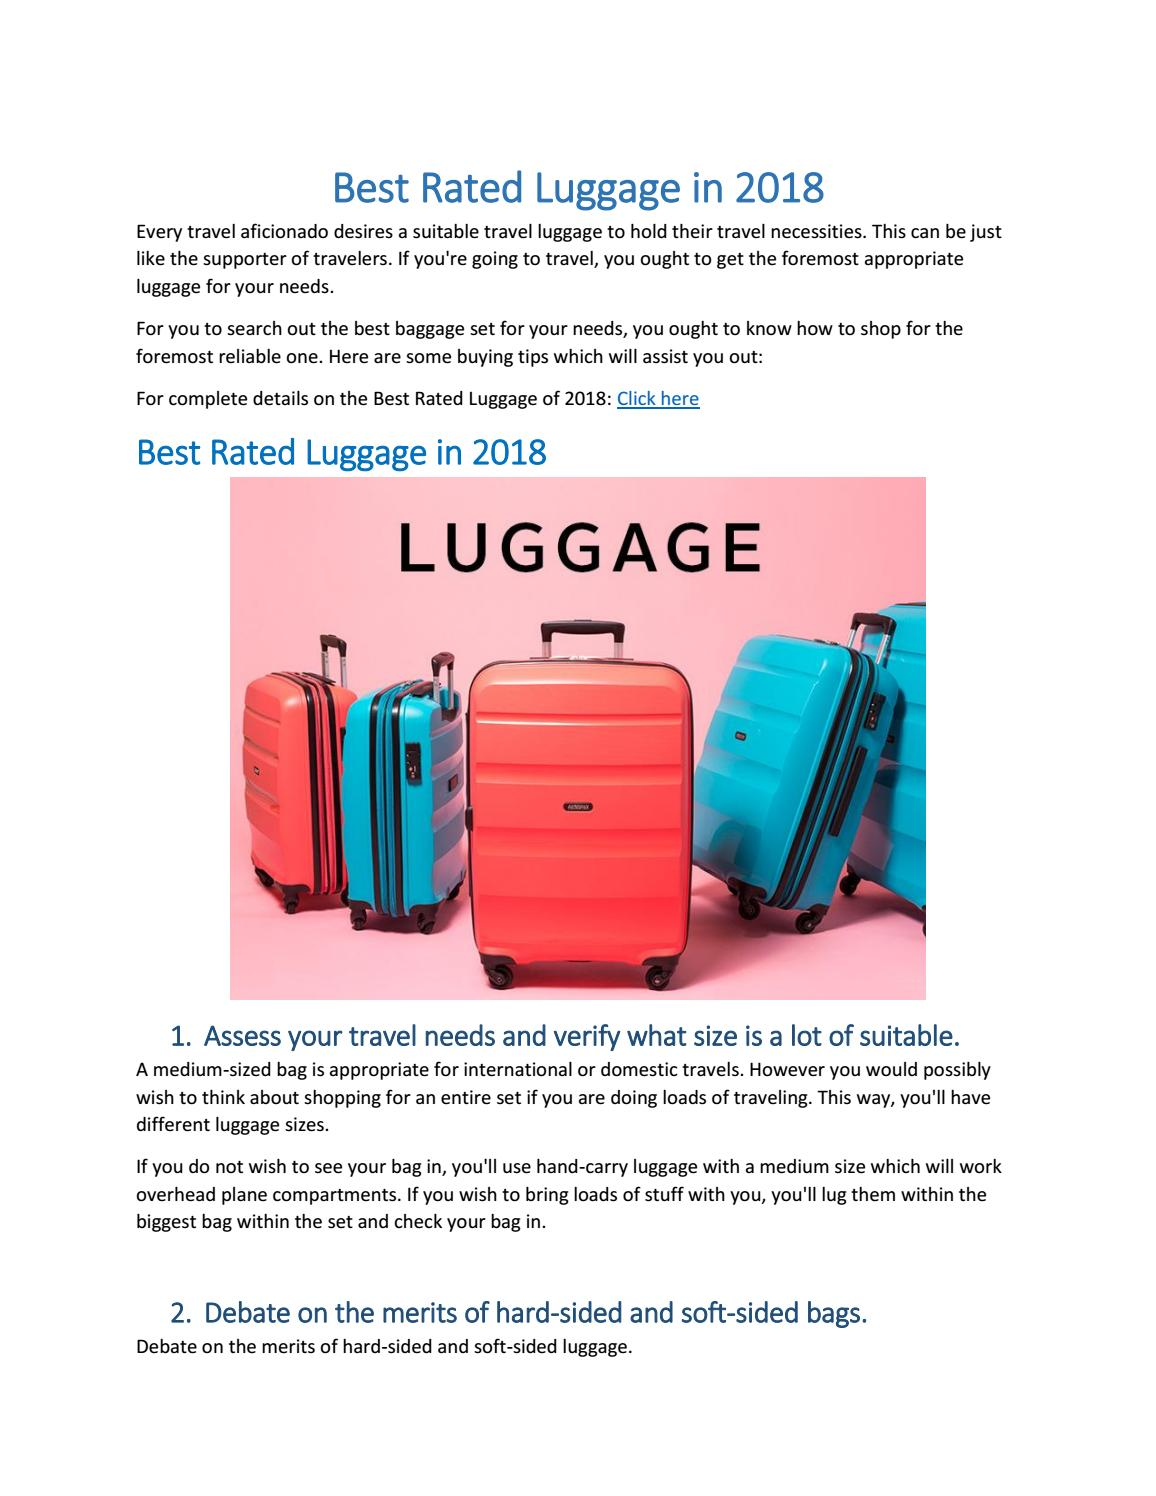 c9ffec3c69ee Best rated luggage of 2018 by haseebshaikh9 - issuu